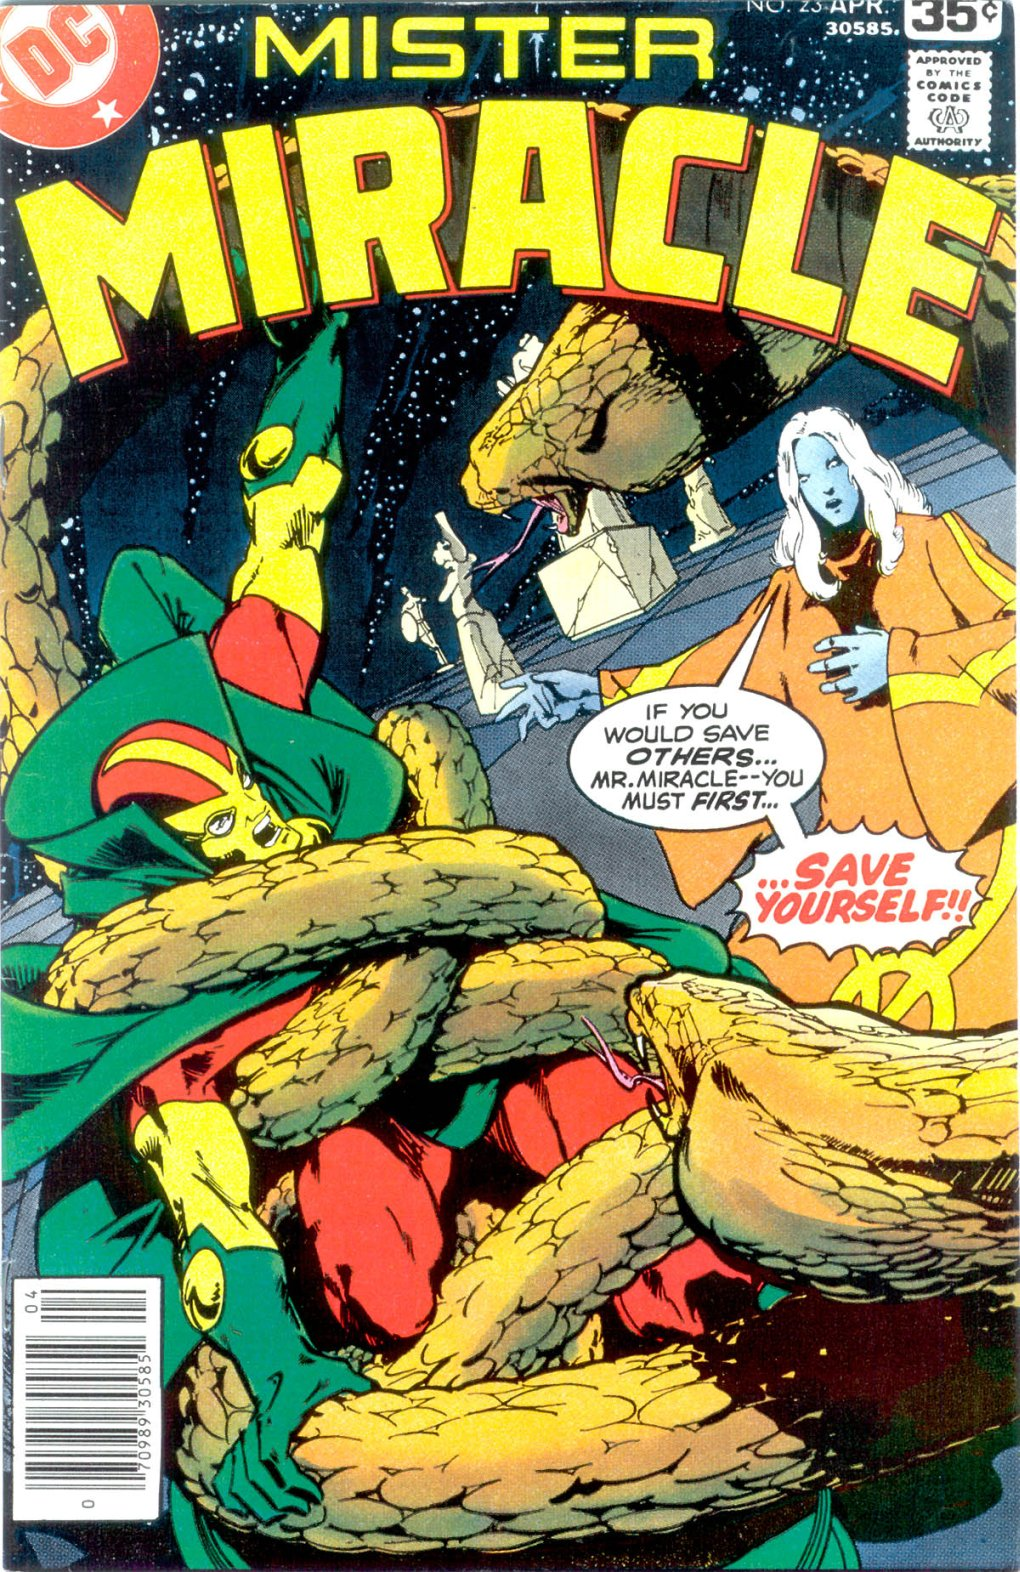 Mister Miracle (1971) issue 23 - Page 1